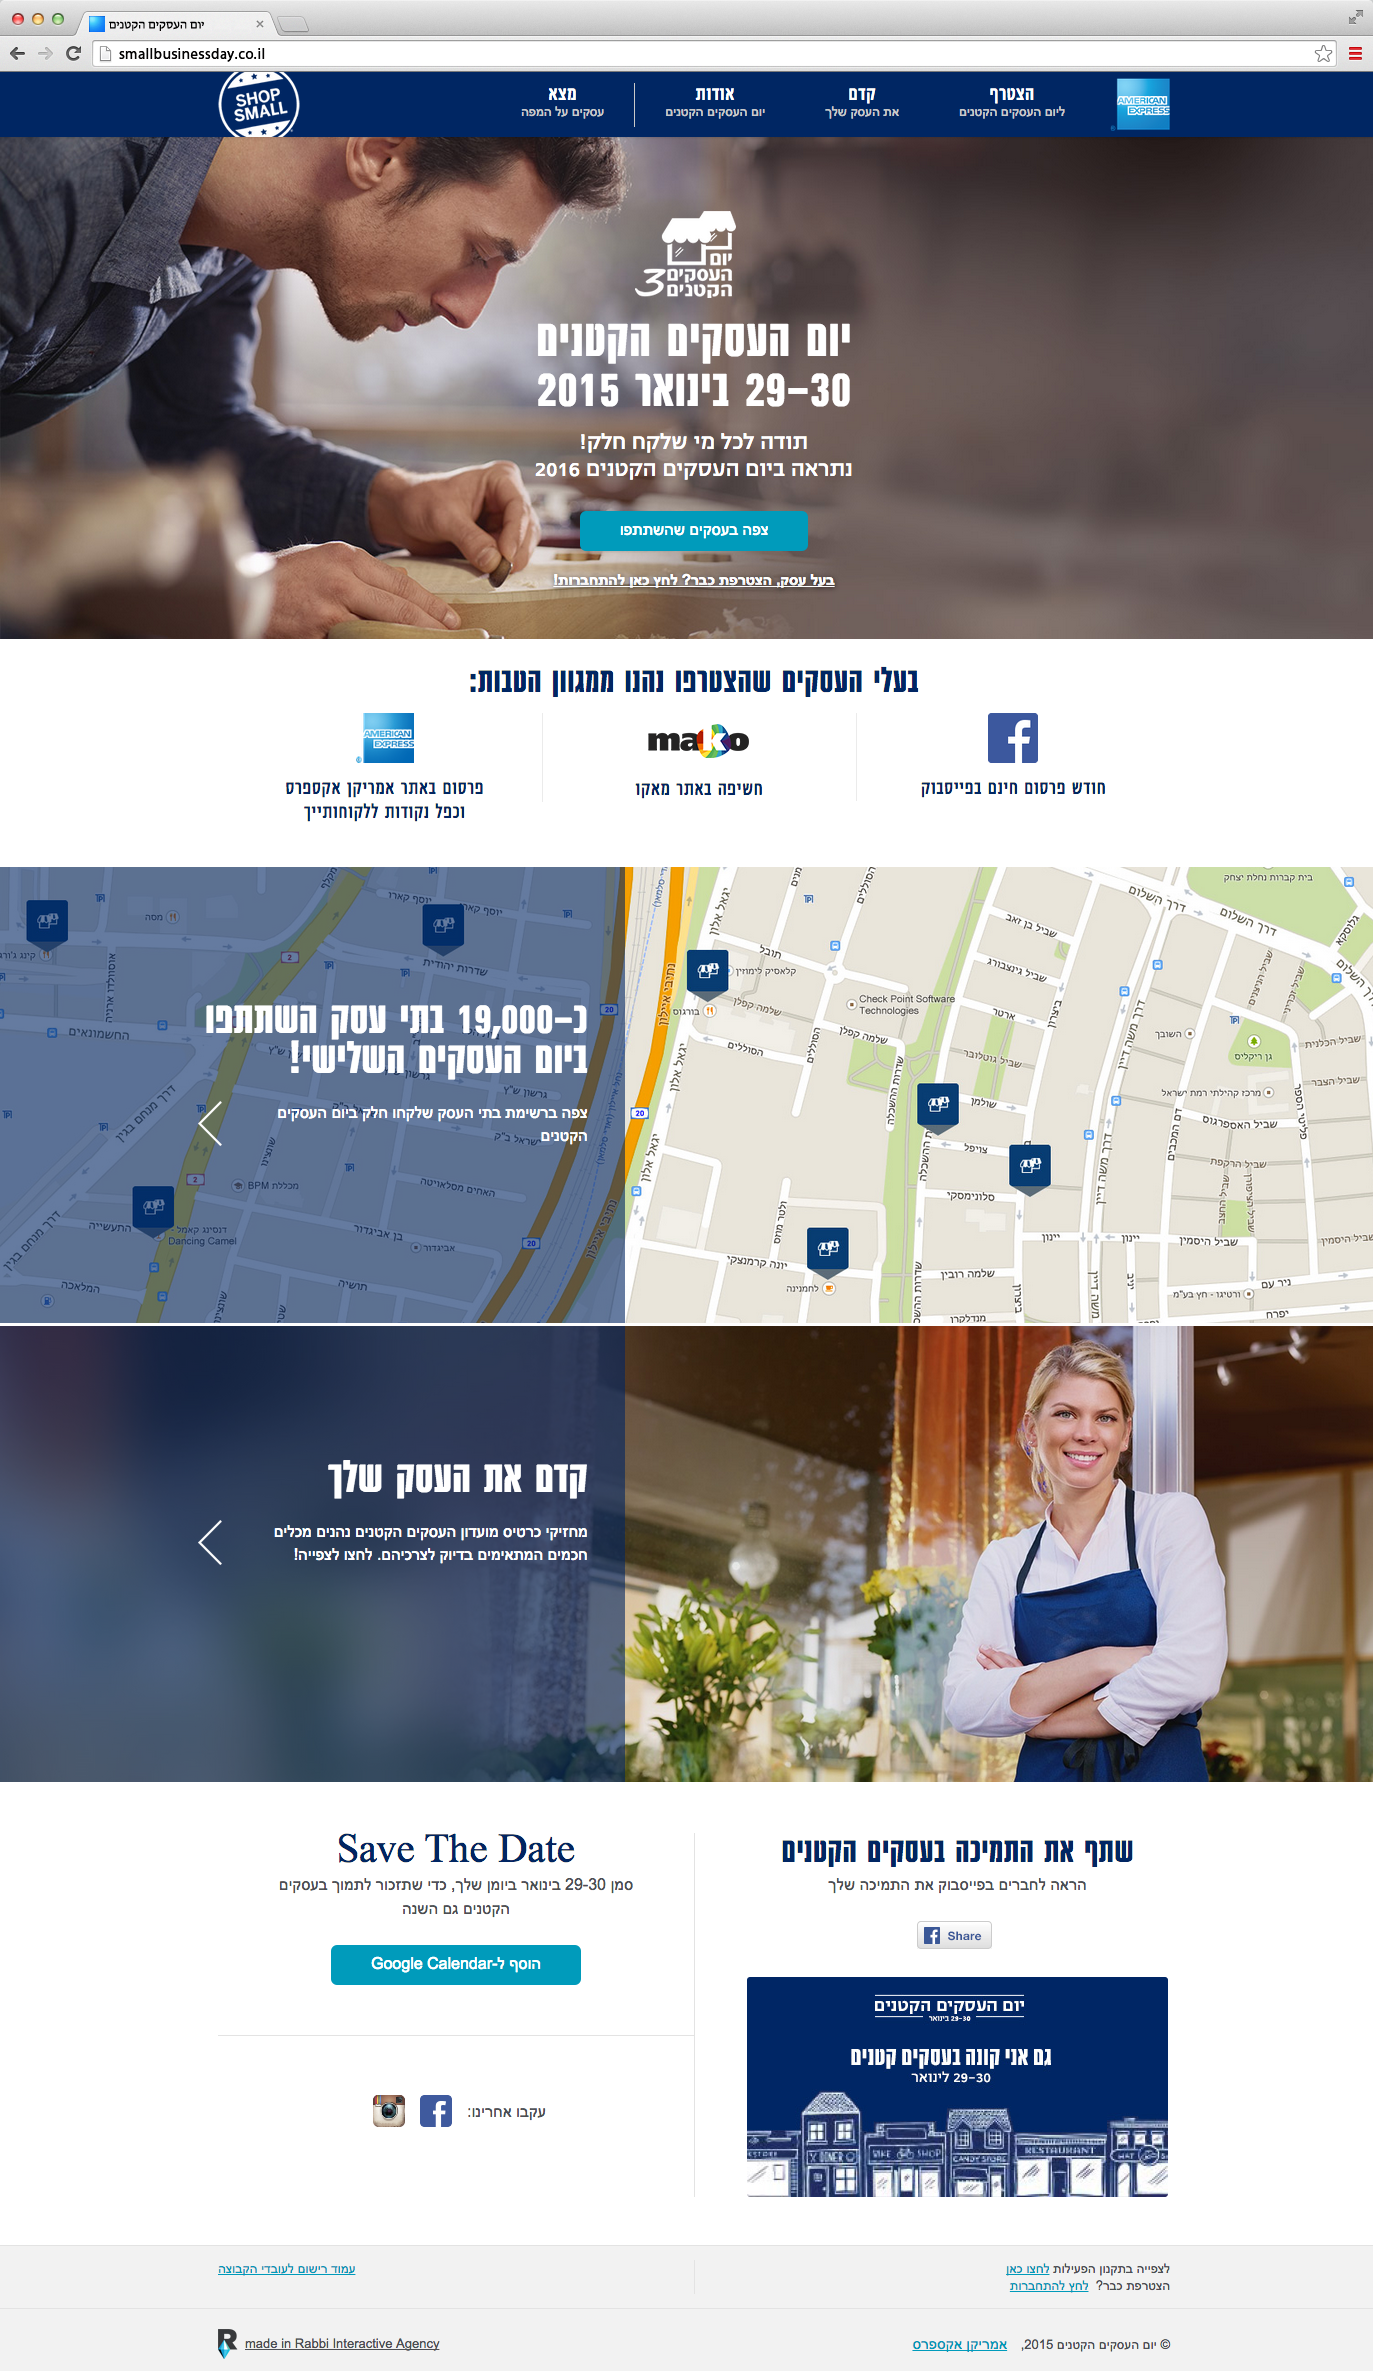 The desktop website designed and developed for the campaign